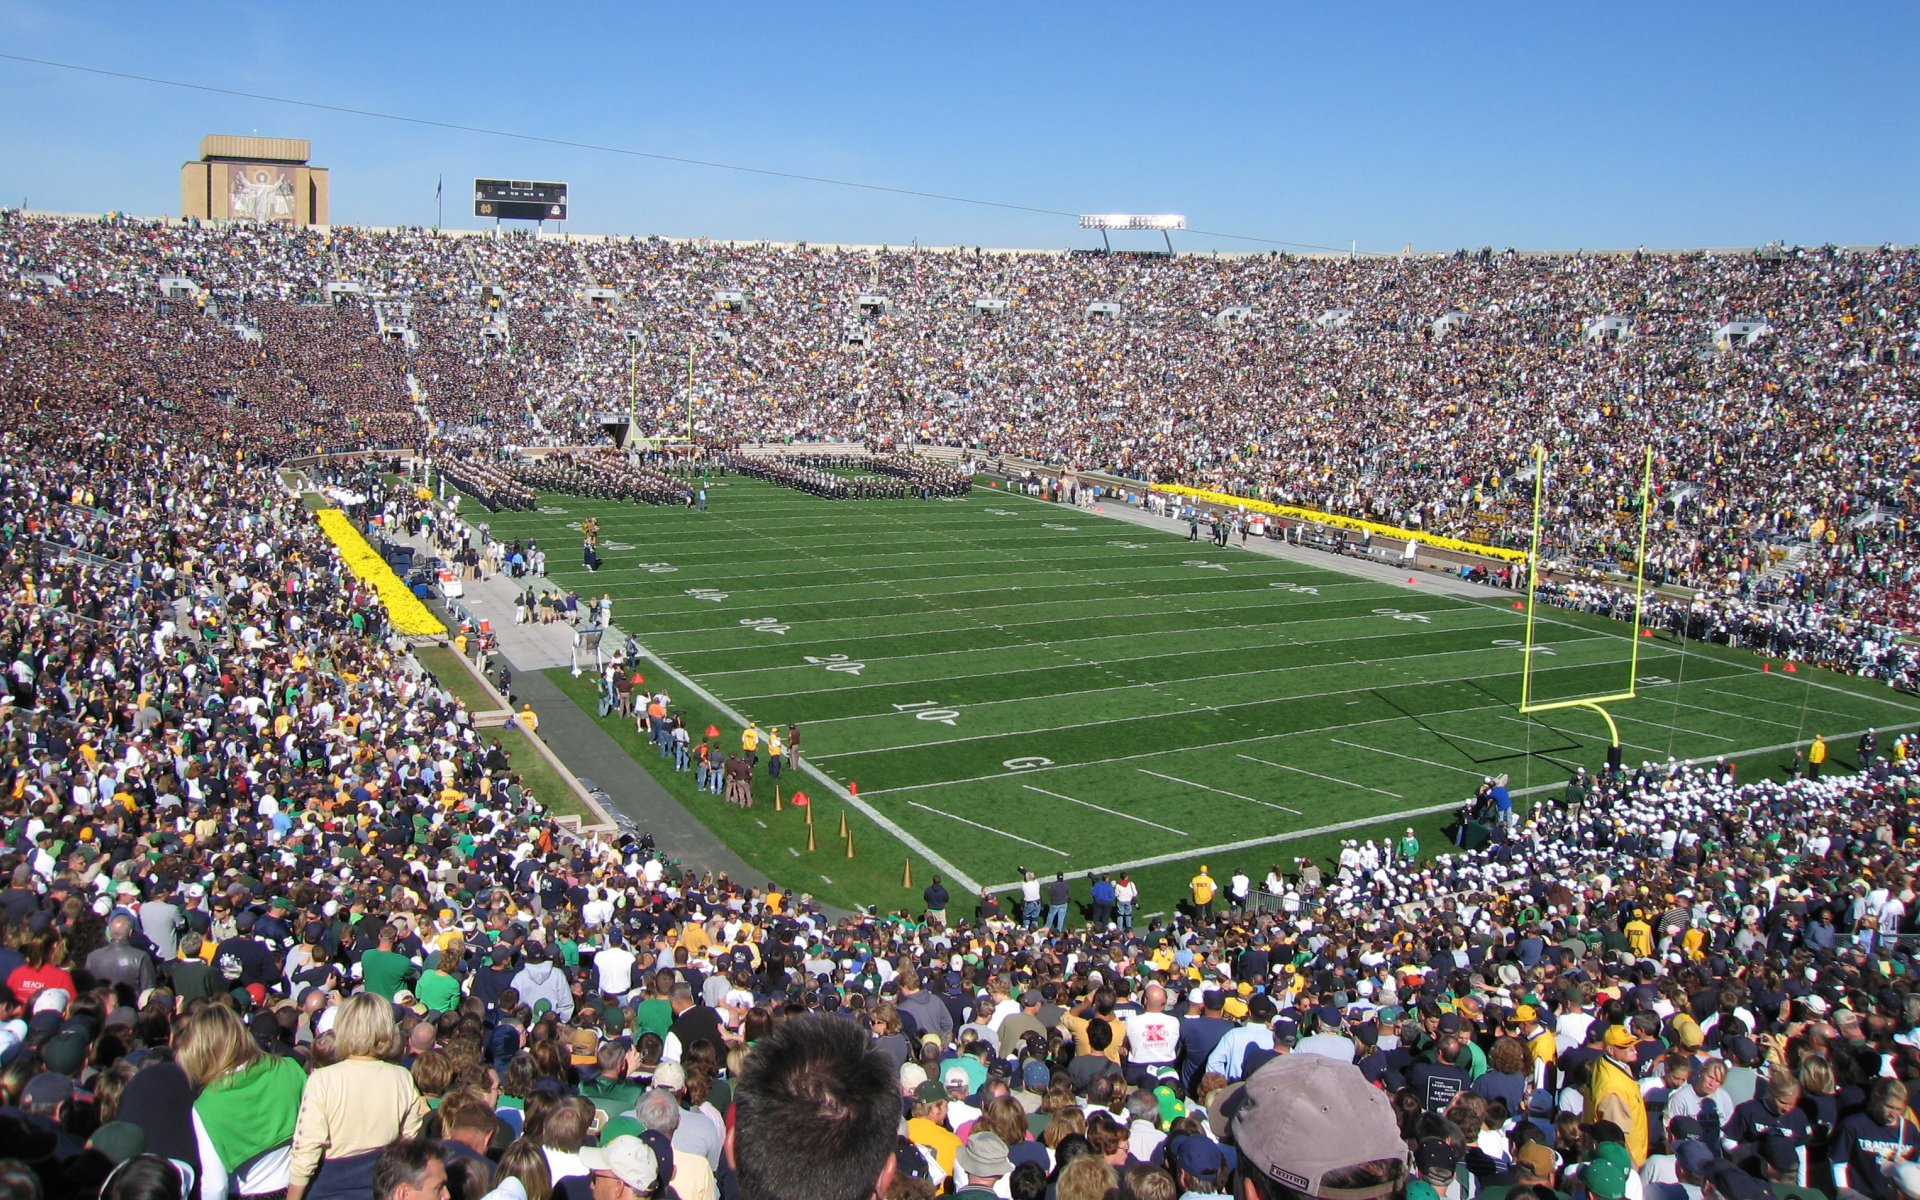 Some Interesting Stadium Facts OPENED 1930 SURFACE Kentucky Blue Grass COST 750000 CAPACITY 80795 RECORD